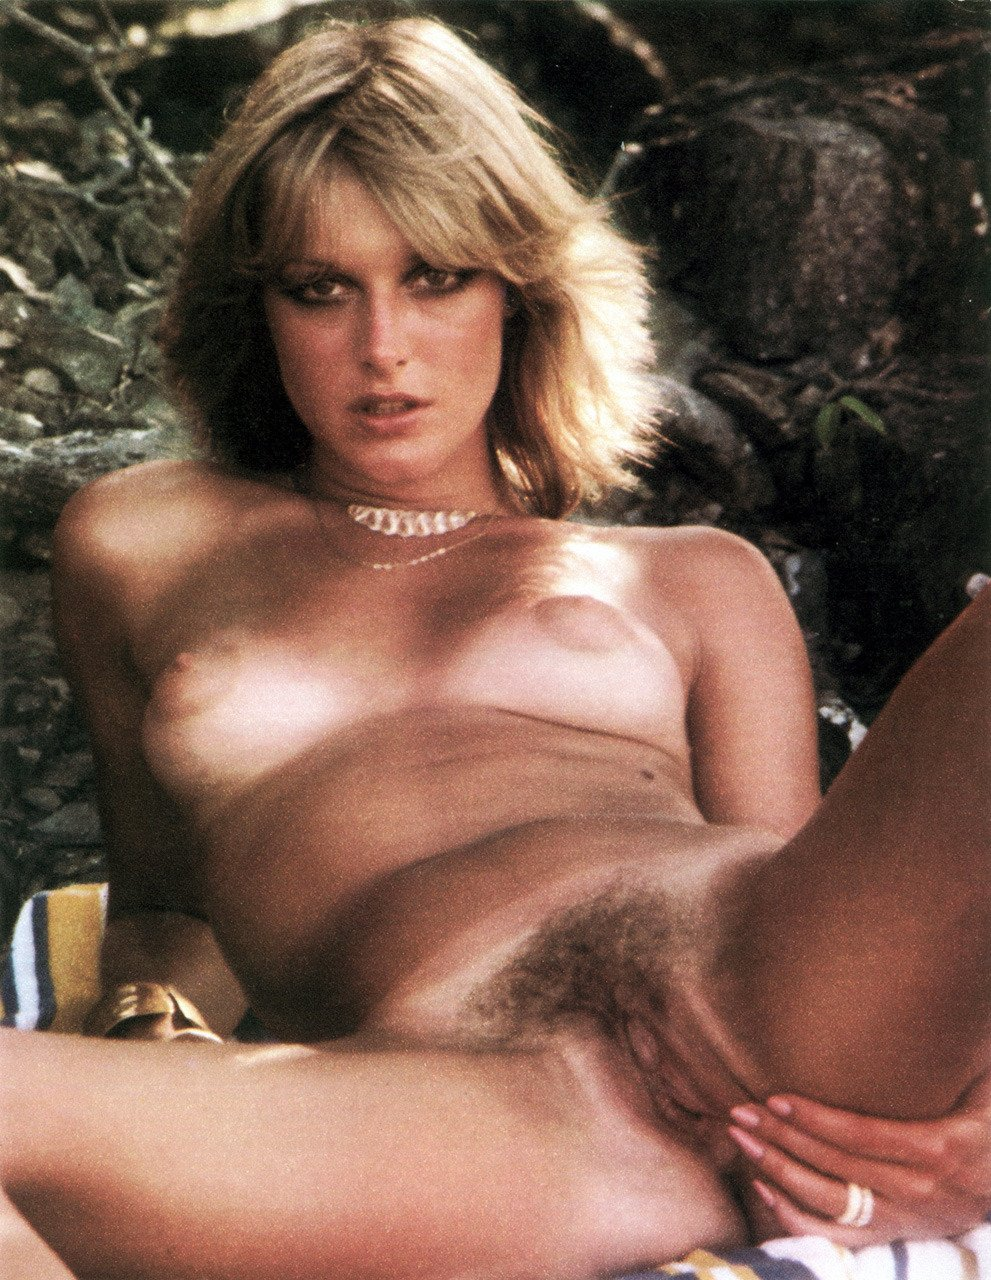 Pictures of 1970s nudist camps